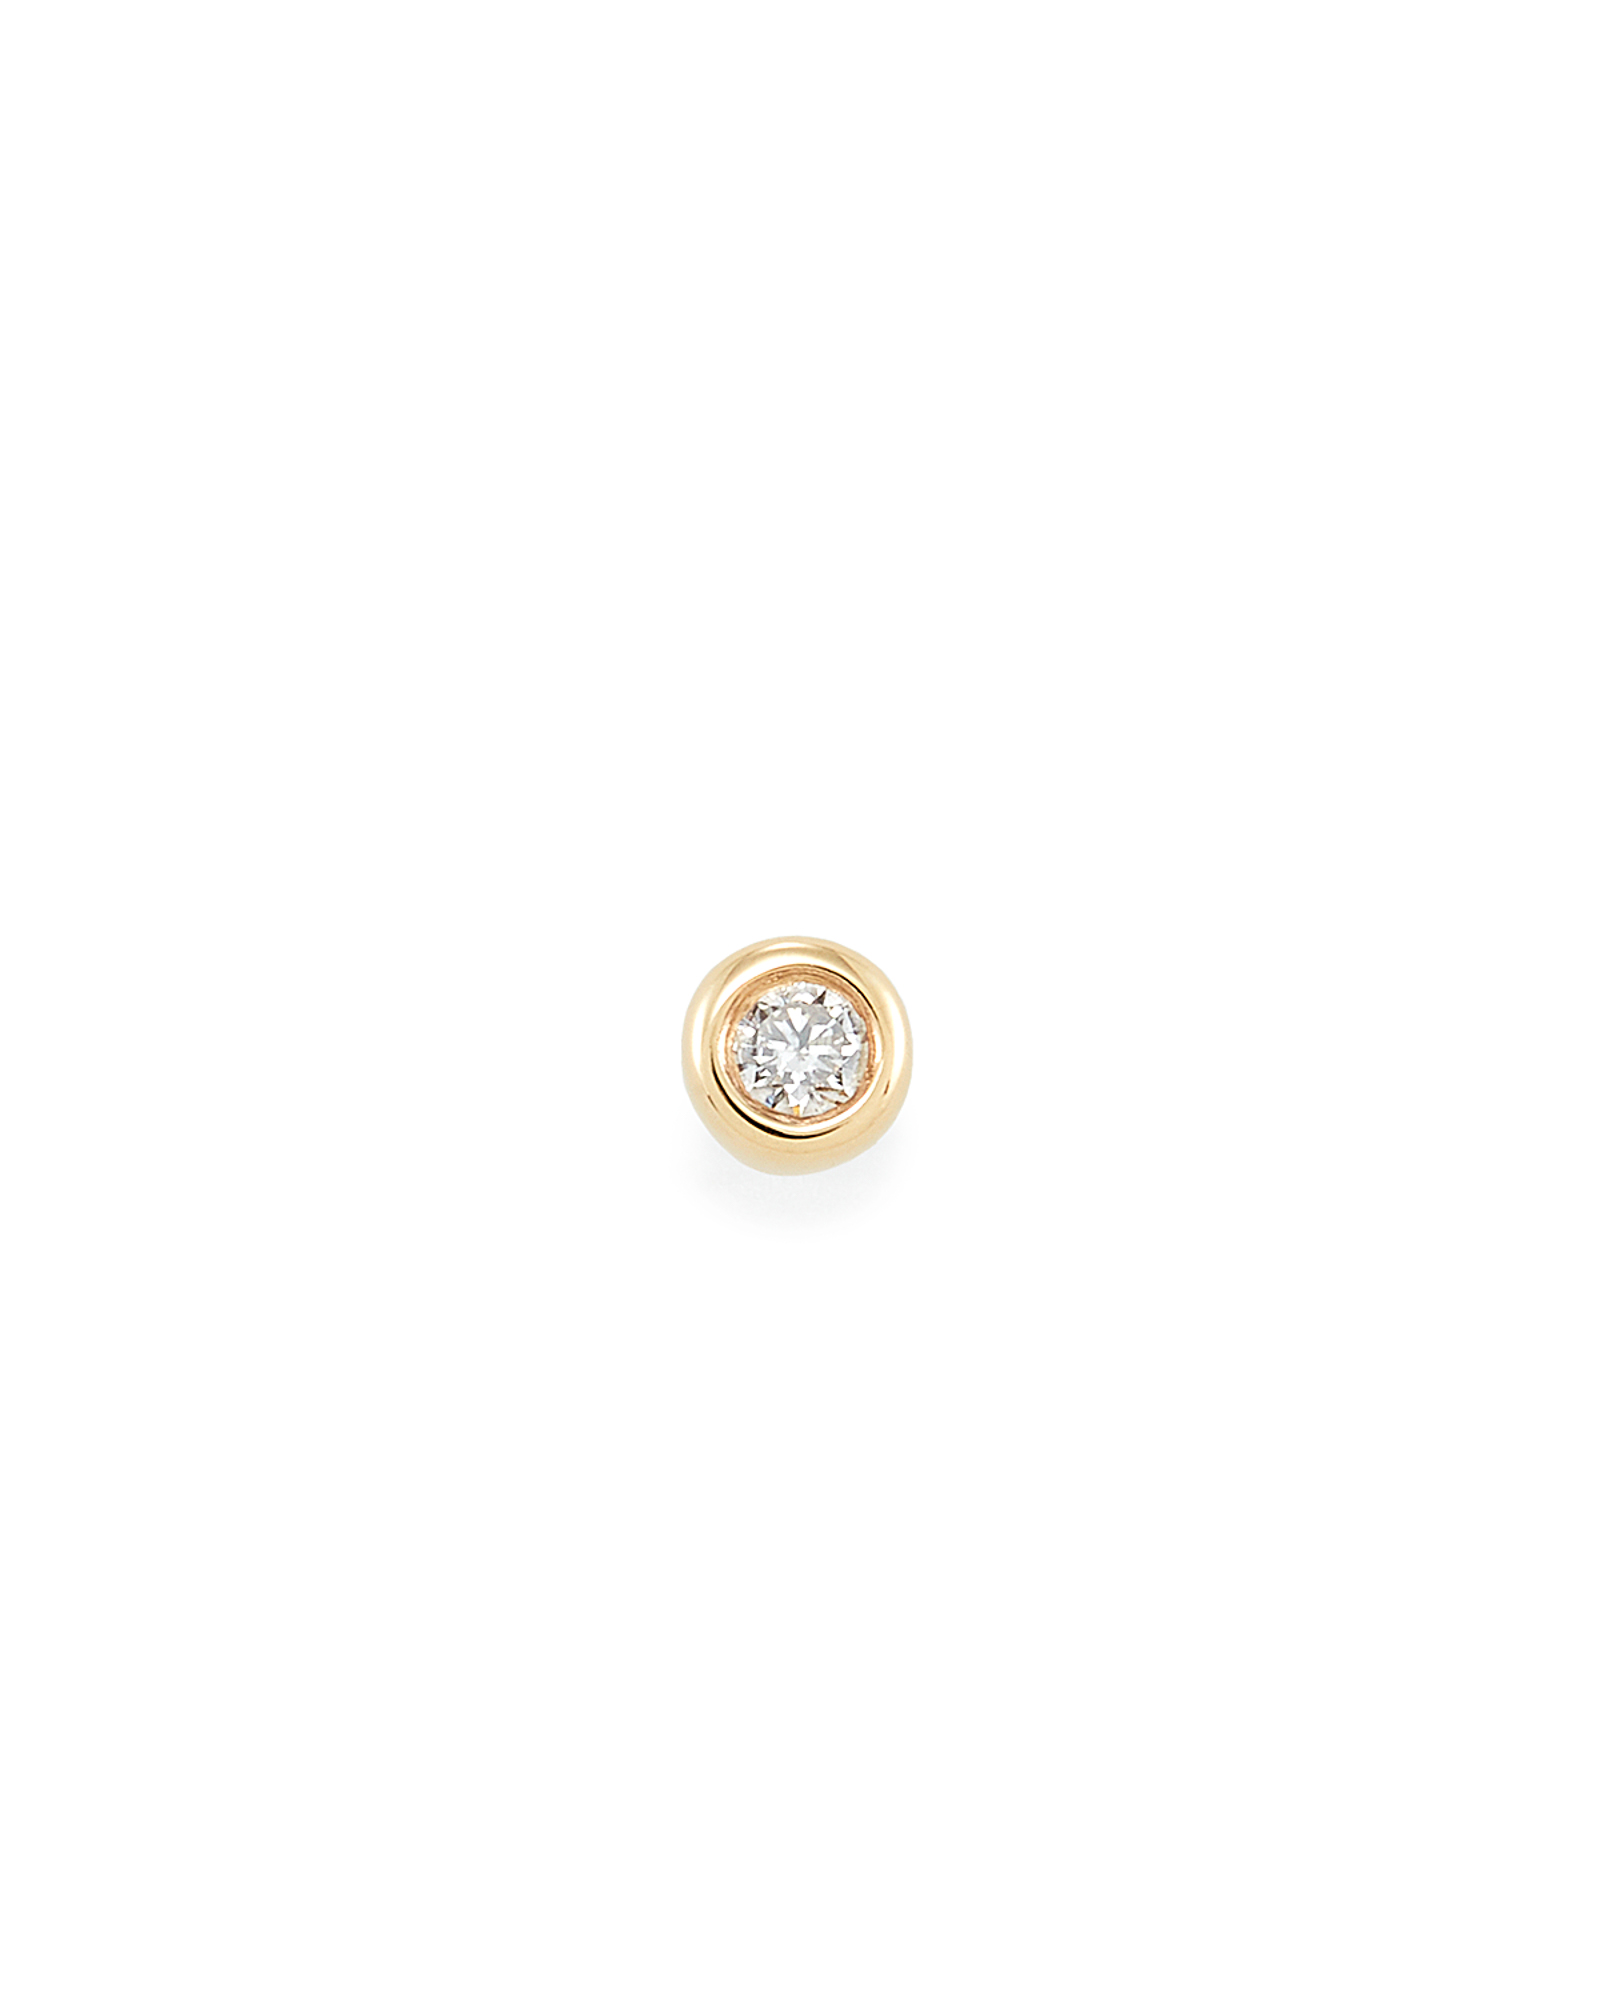 Reeve Mini 14K Yellow Gold Stud Earring in White Diamond